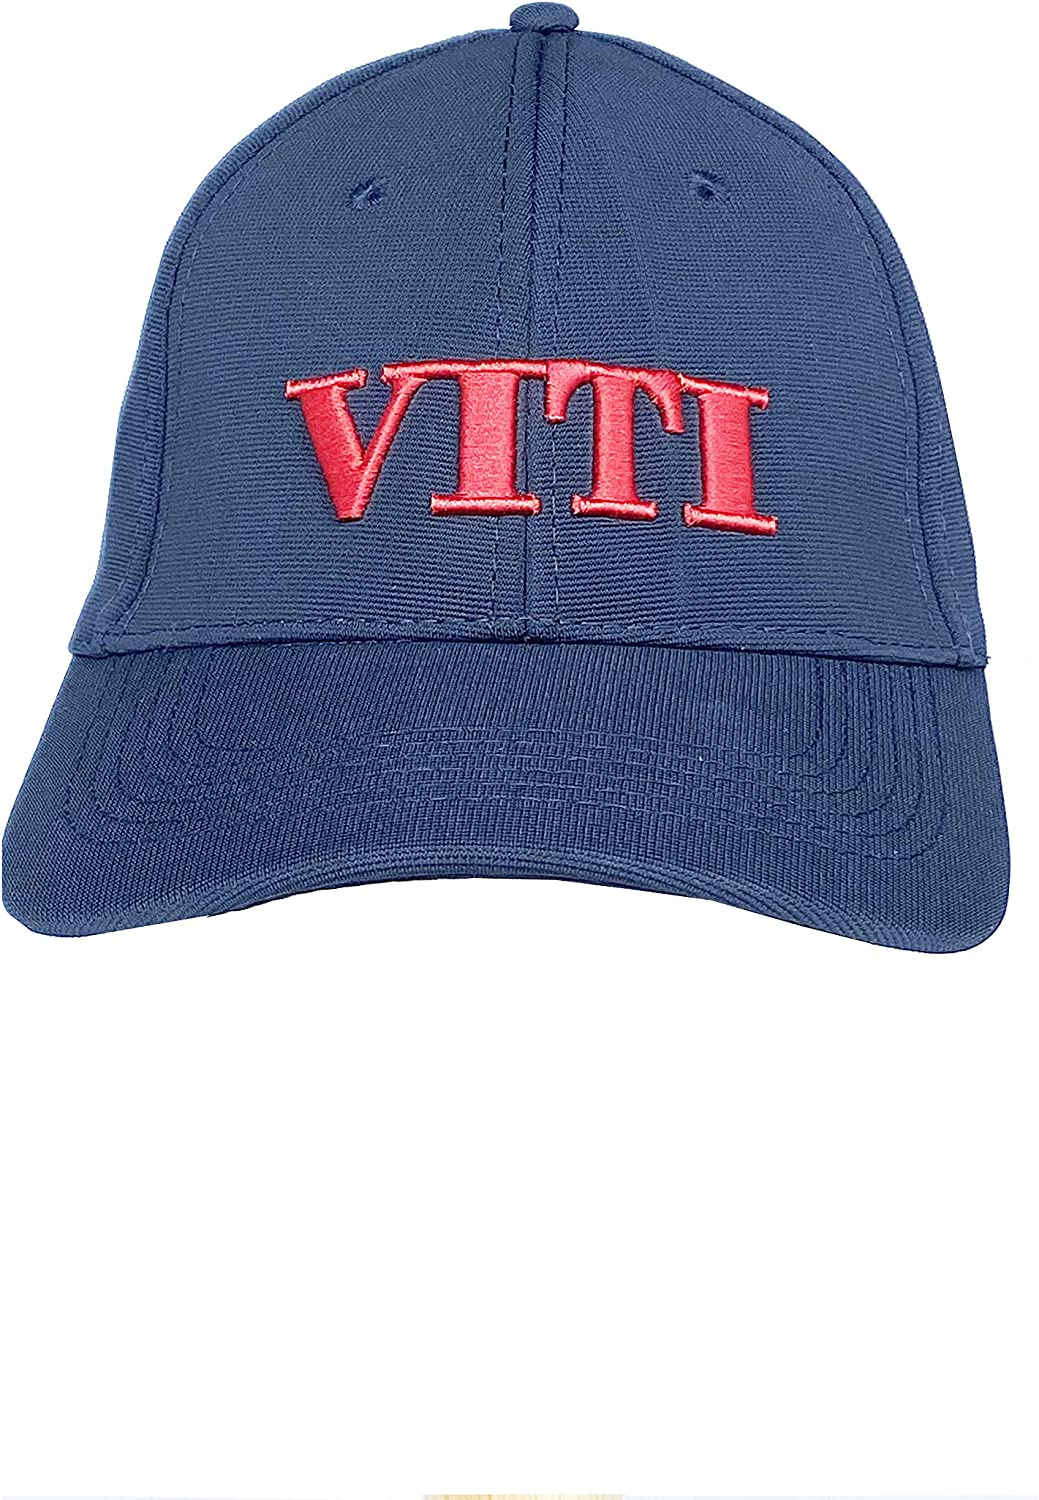 VITI Sports Cap Adjustable Size for Running Workouts Outdoor Cotton Baseball Cap